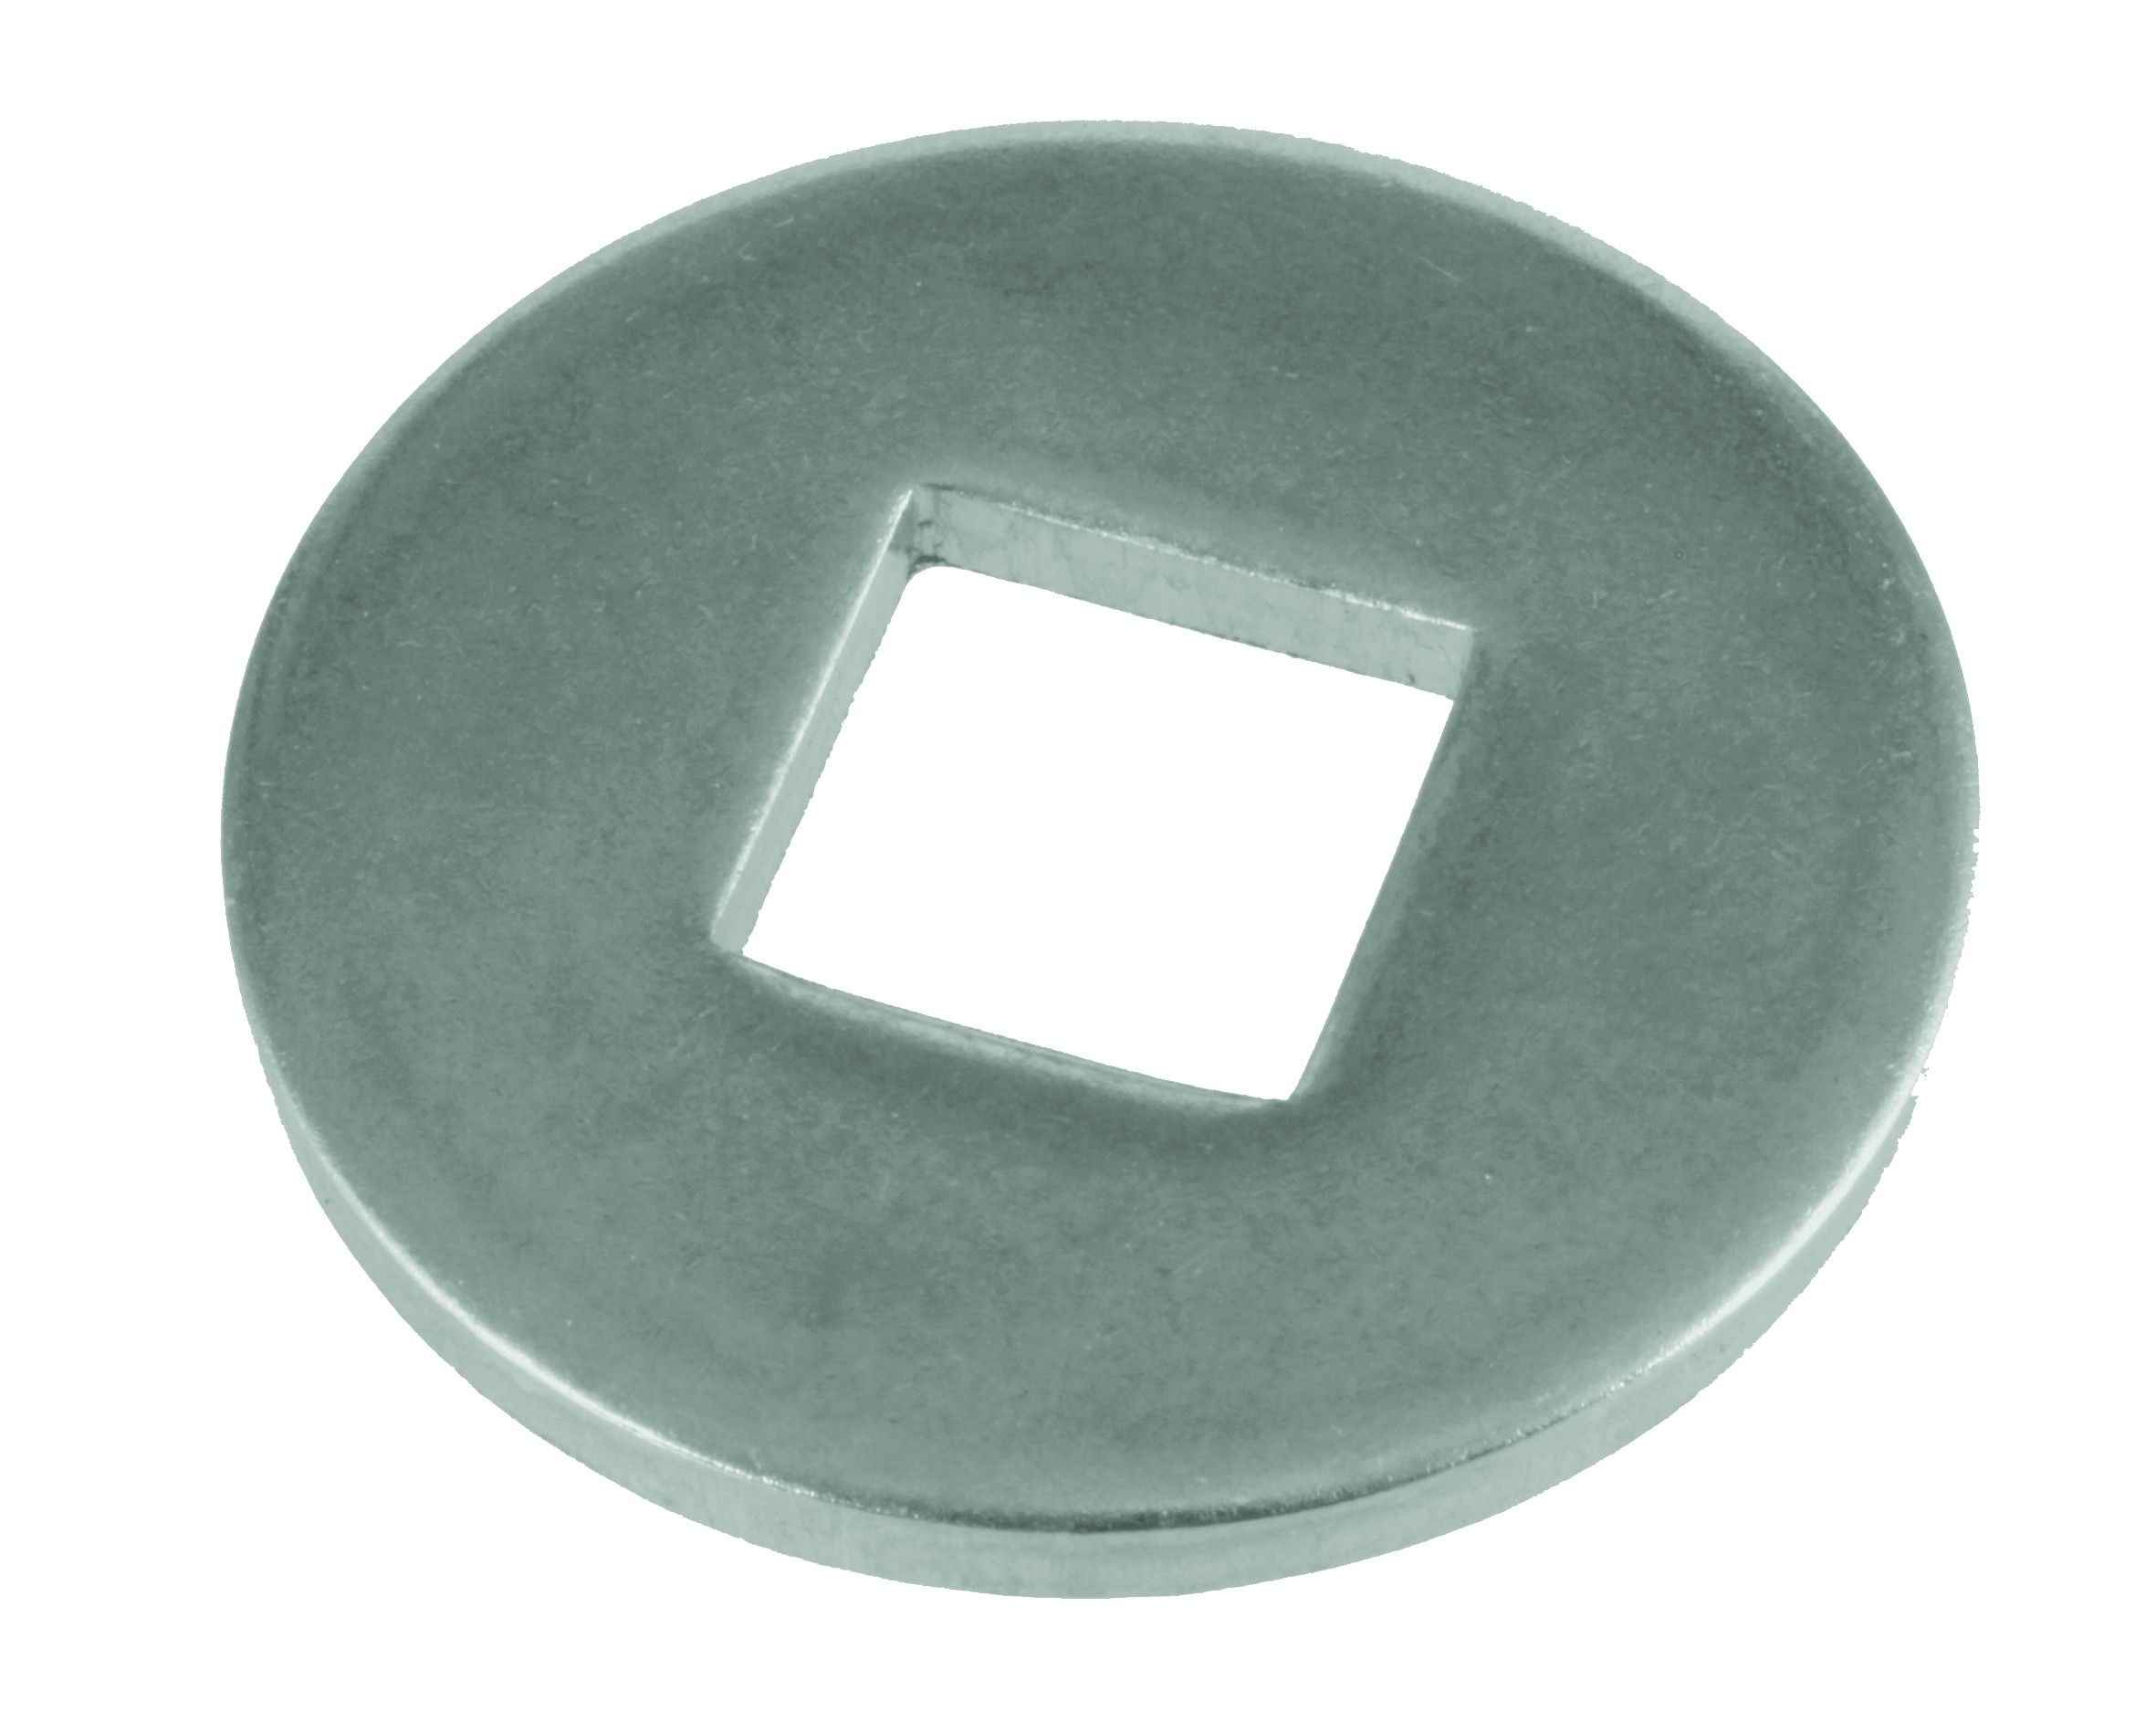 RONDELLE PLATE CHARPENTE DIN 440 ISO 7094 TYPE V INOX A4